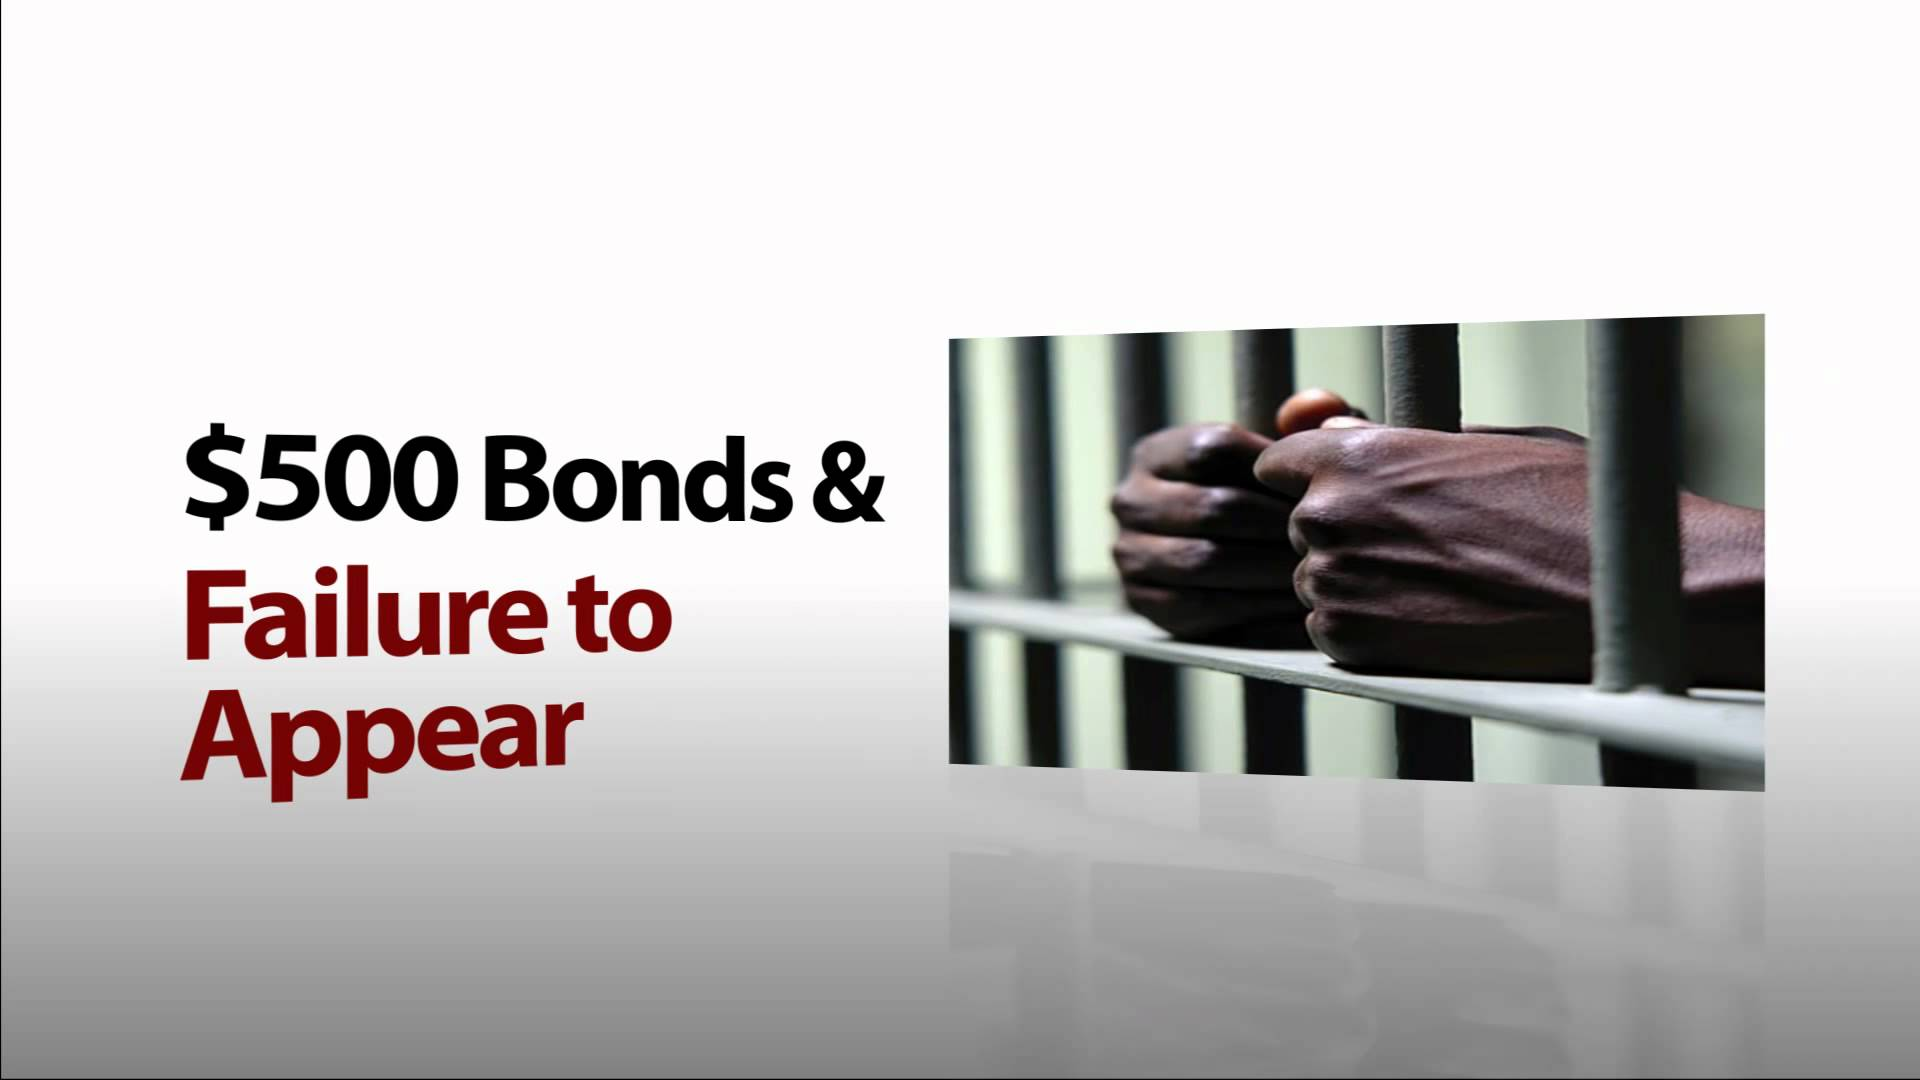 Amistad Bail Bonds | Bail Bondsmen at 421 Chapanoke Rd - Raleigh NC - Reviews - Photos - Phone Number